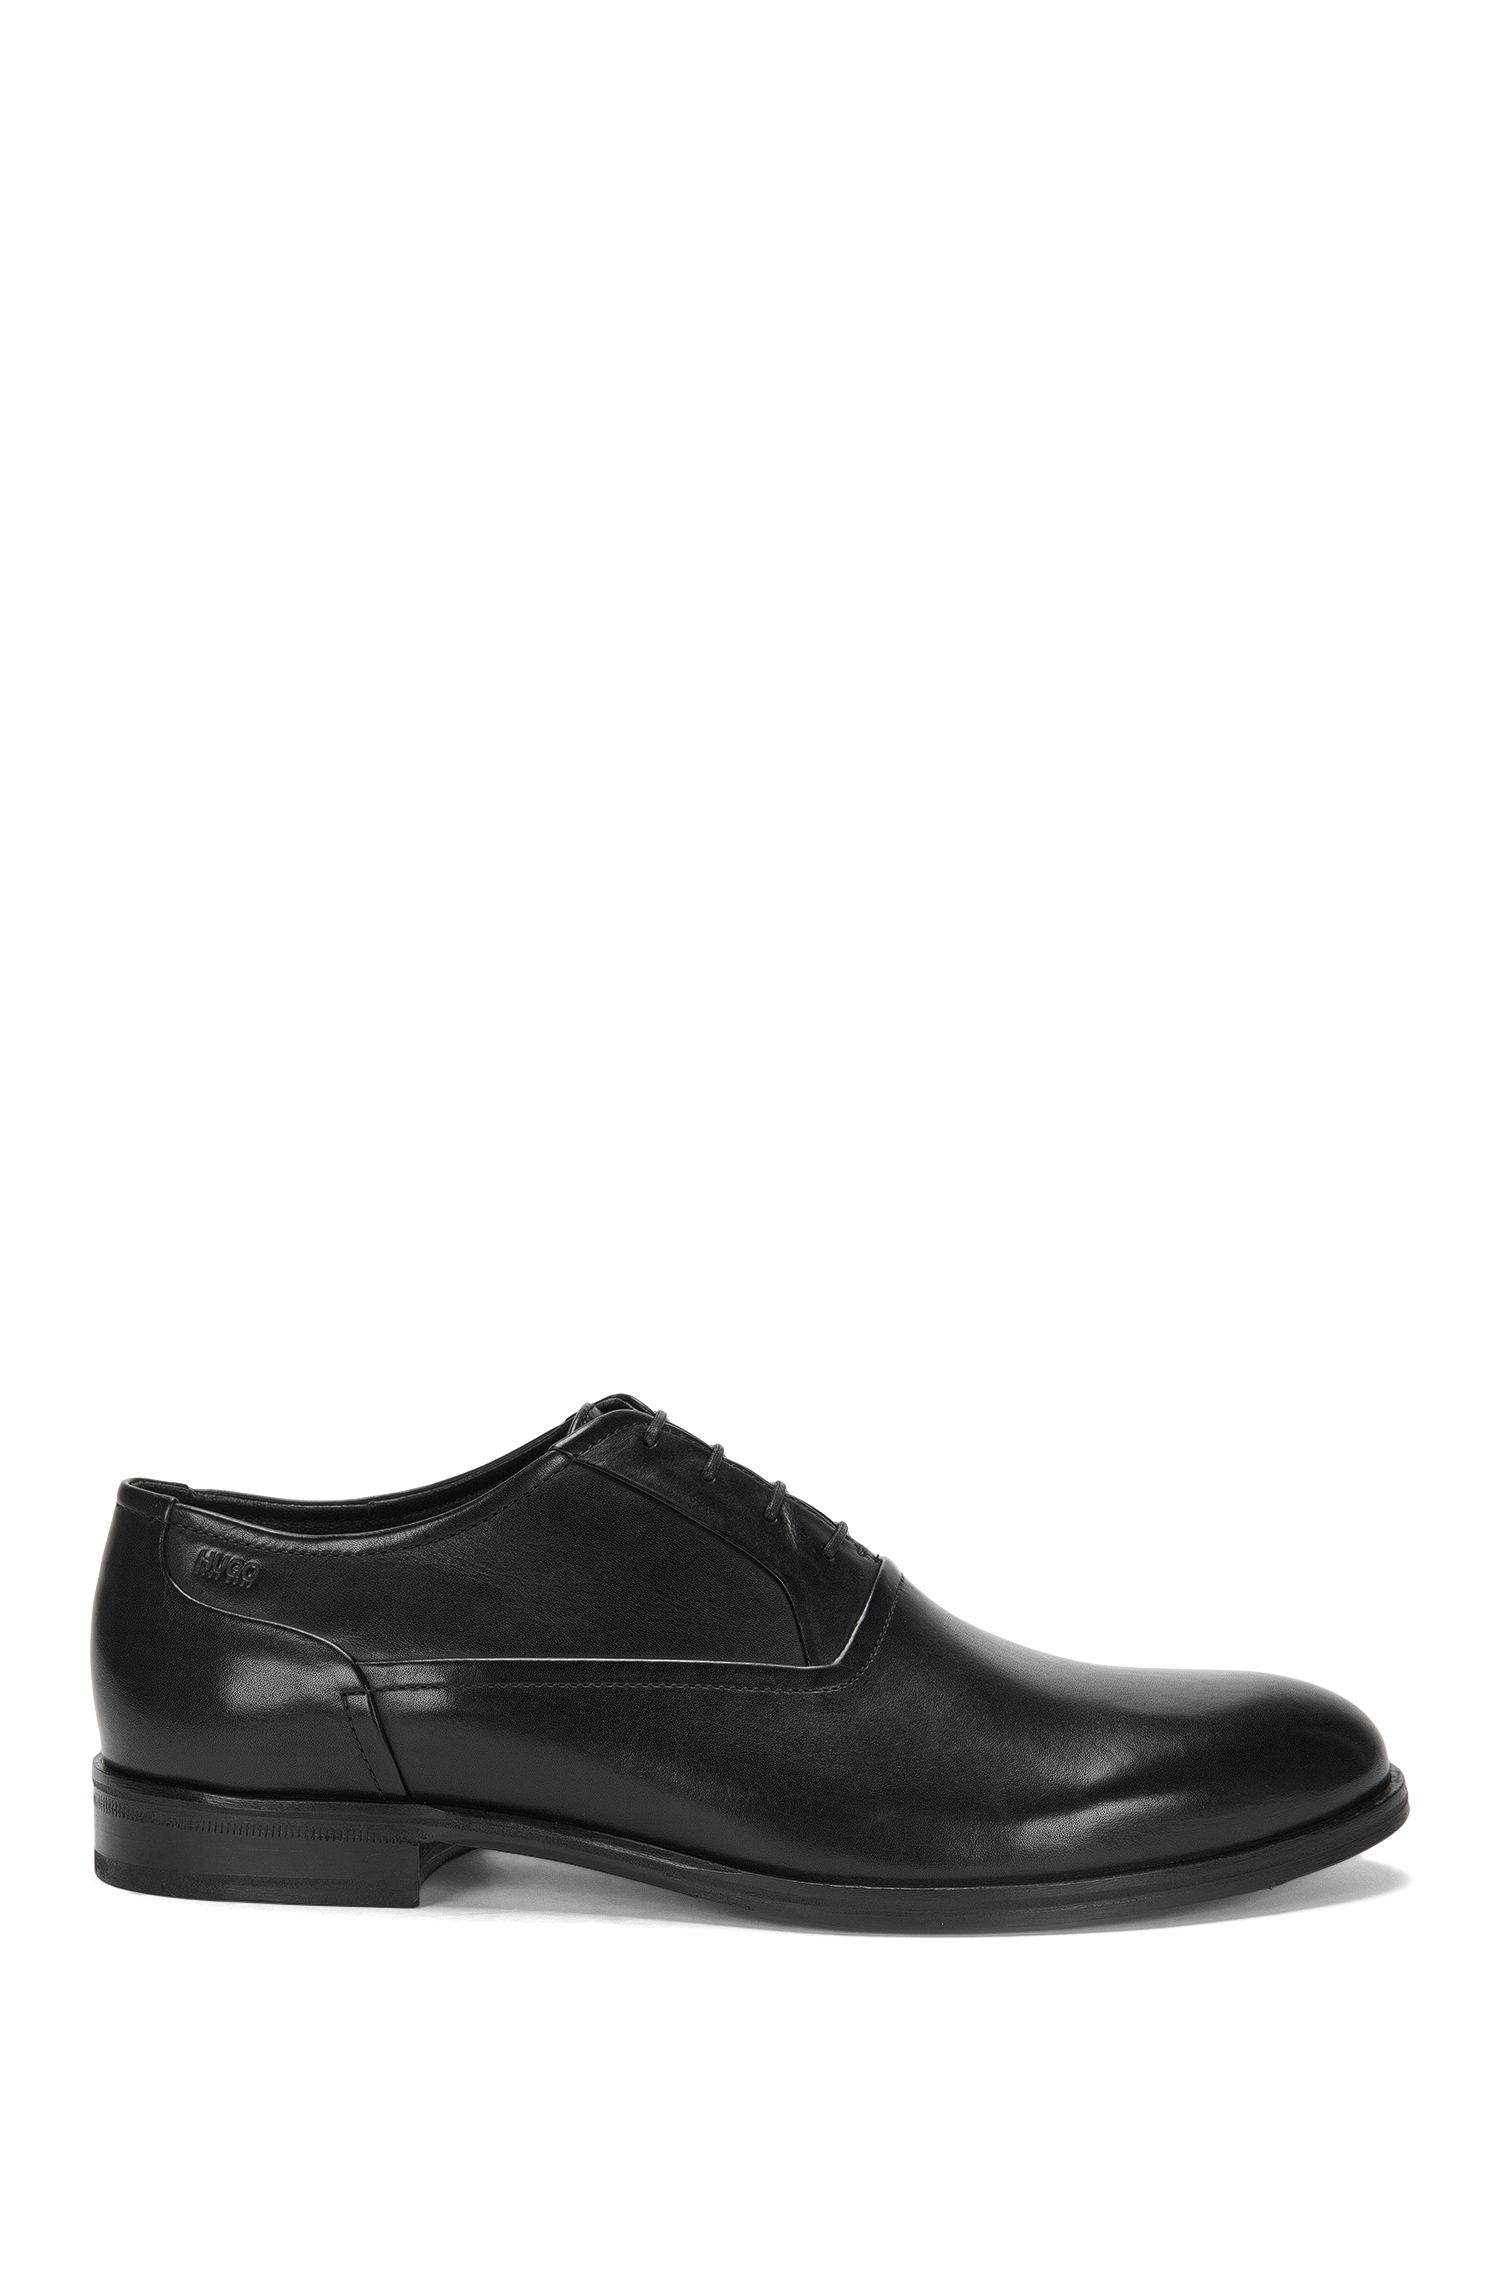 Leather lace-up shoes in Oxford style: 'Tempt_Oxfr_lt'